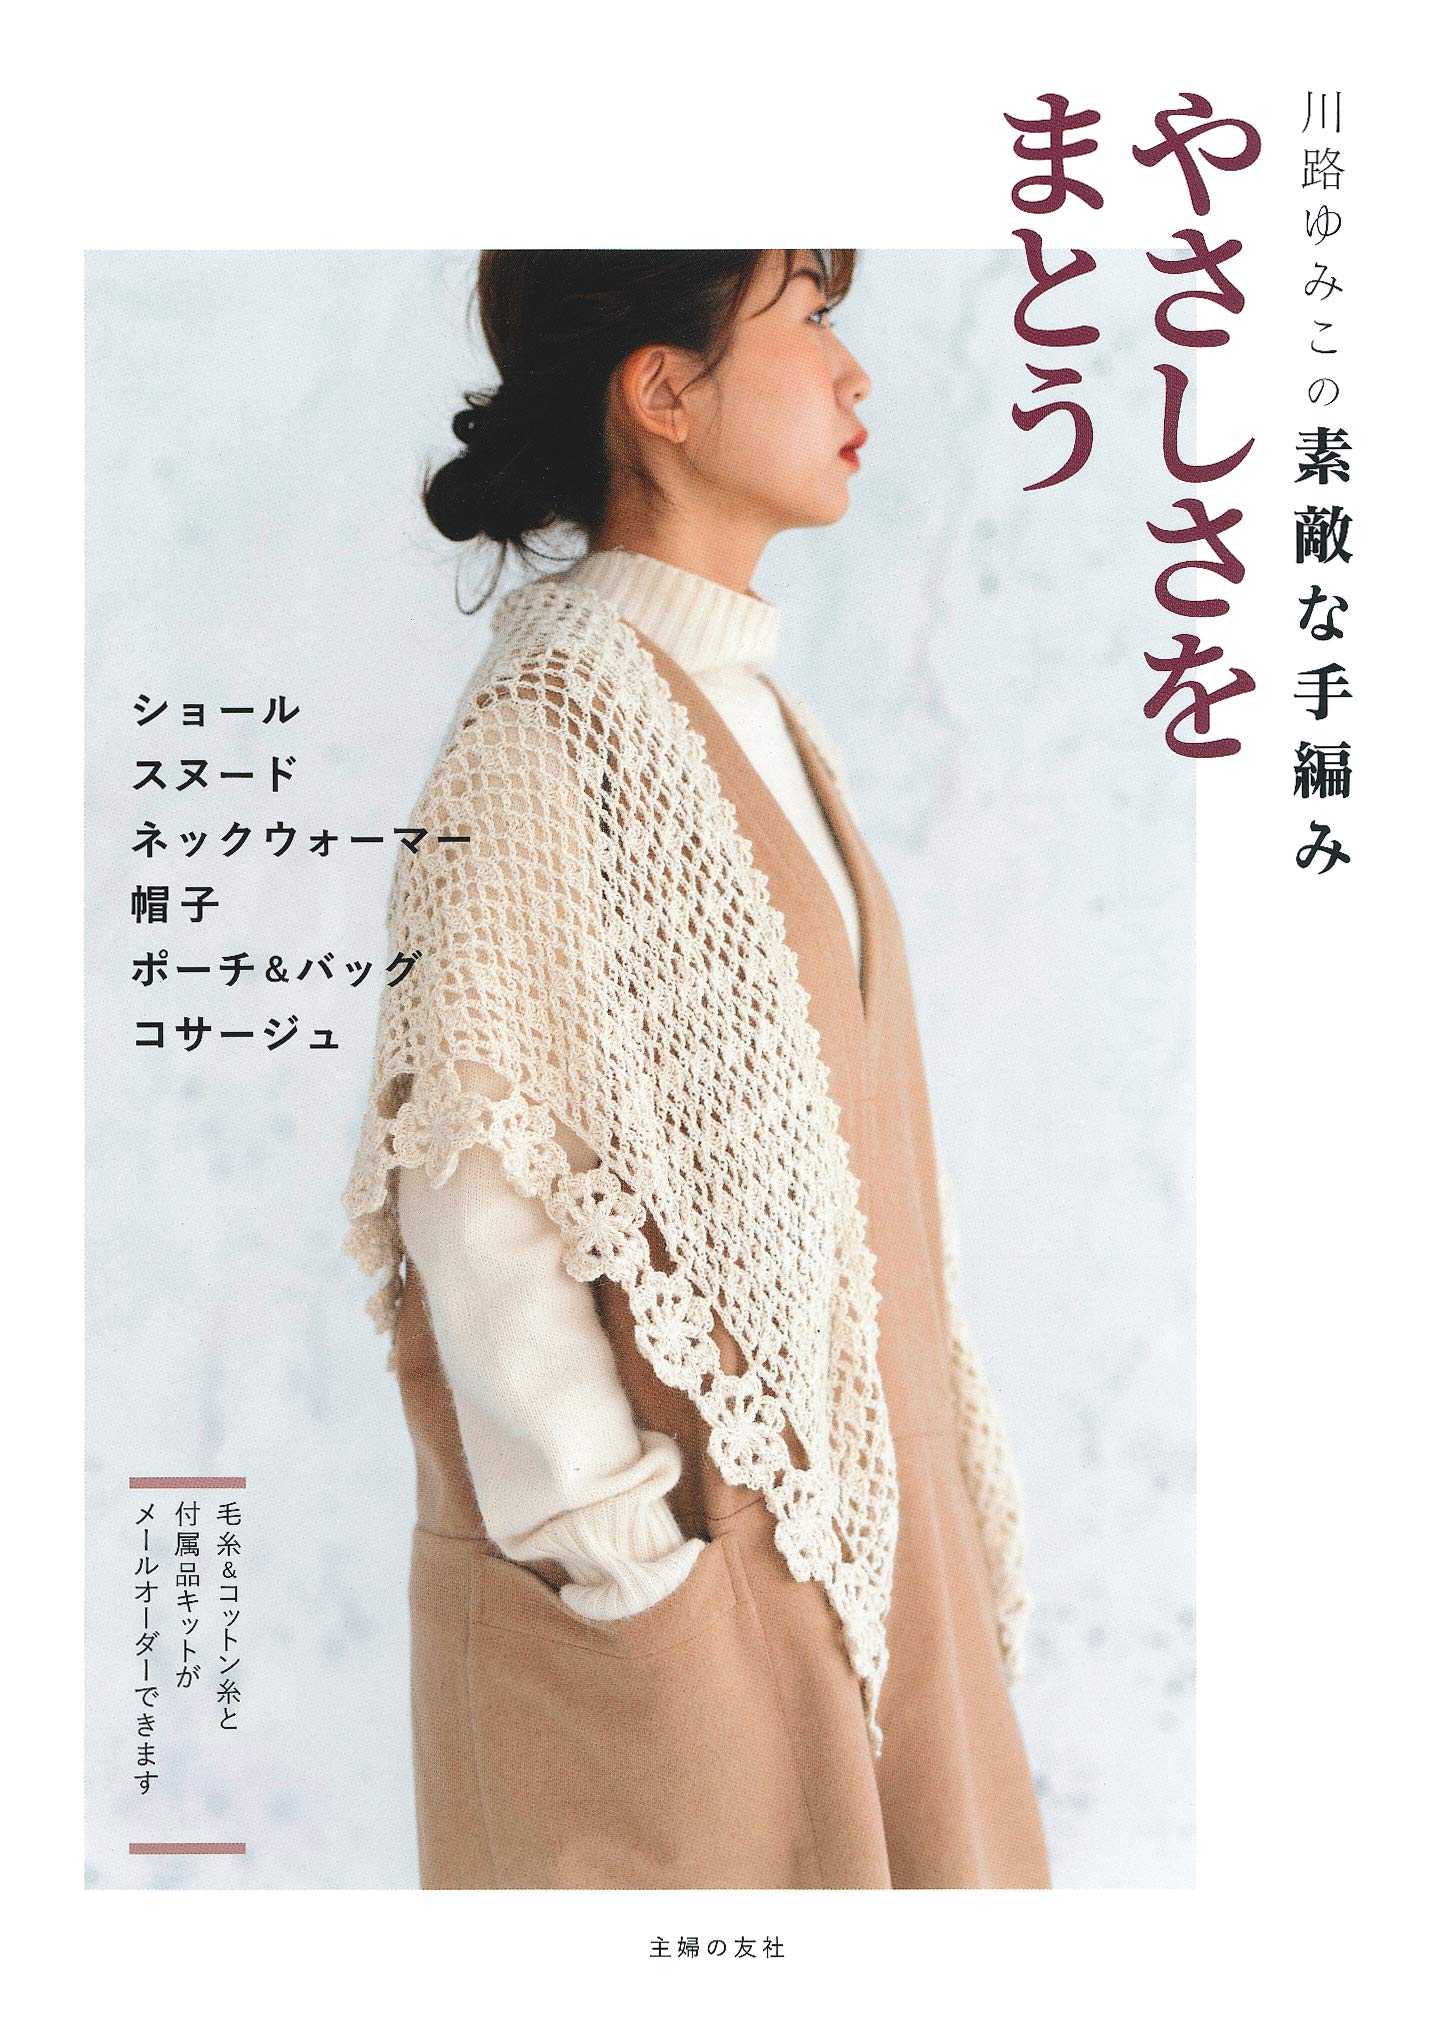 Wear gentleness - Yumiko Kawaji wonderful hand-knitting book